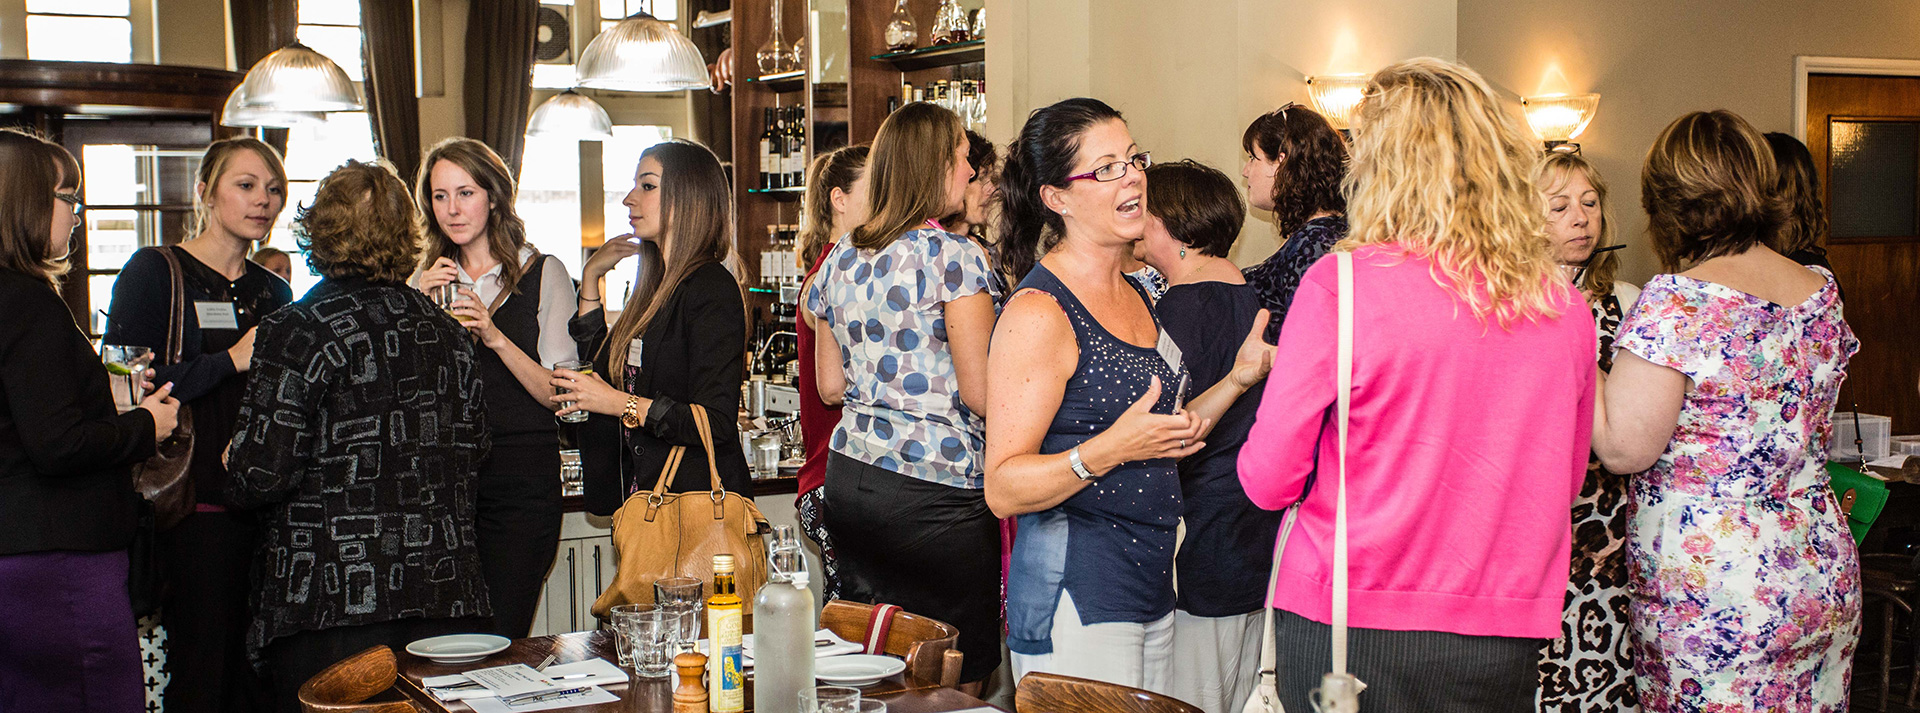 20140909 Ladies Lunch Club-12-cropped